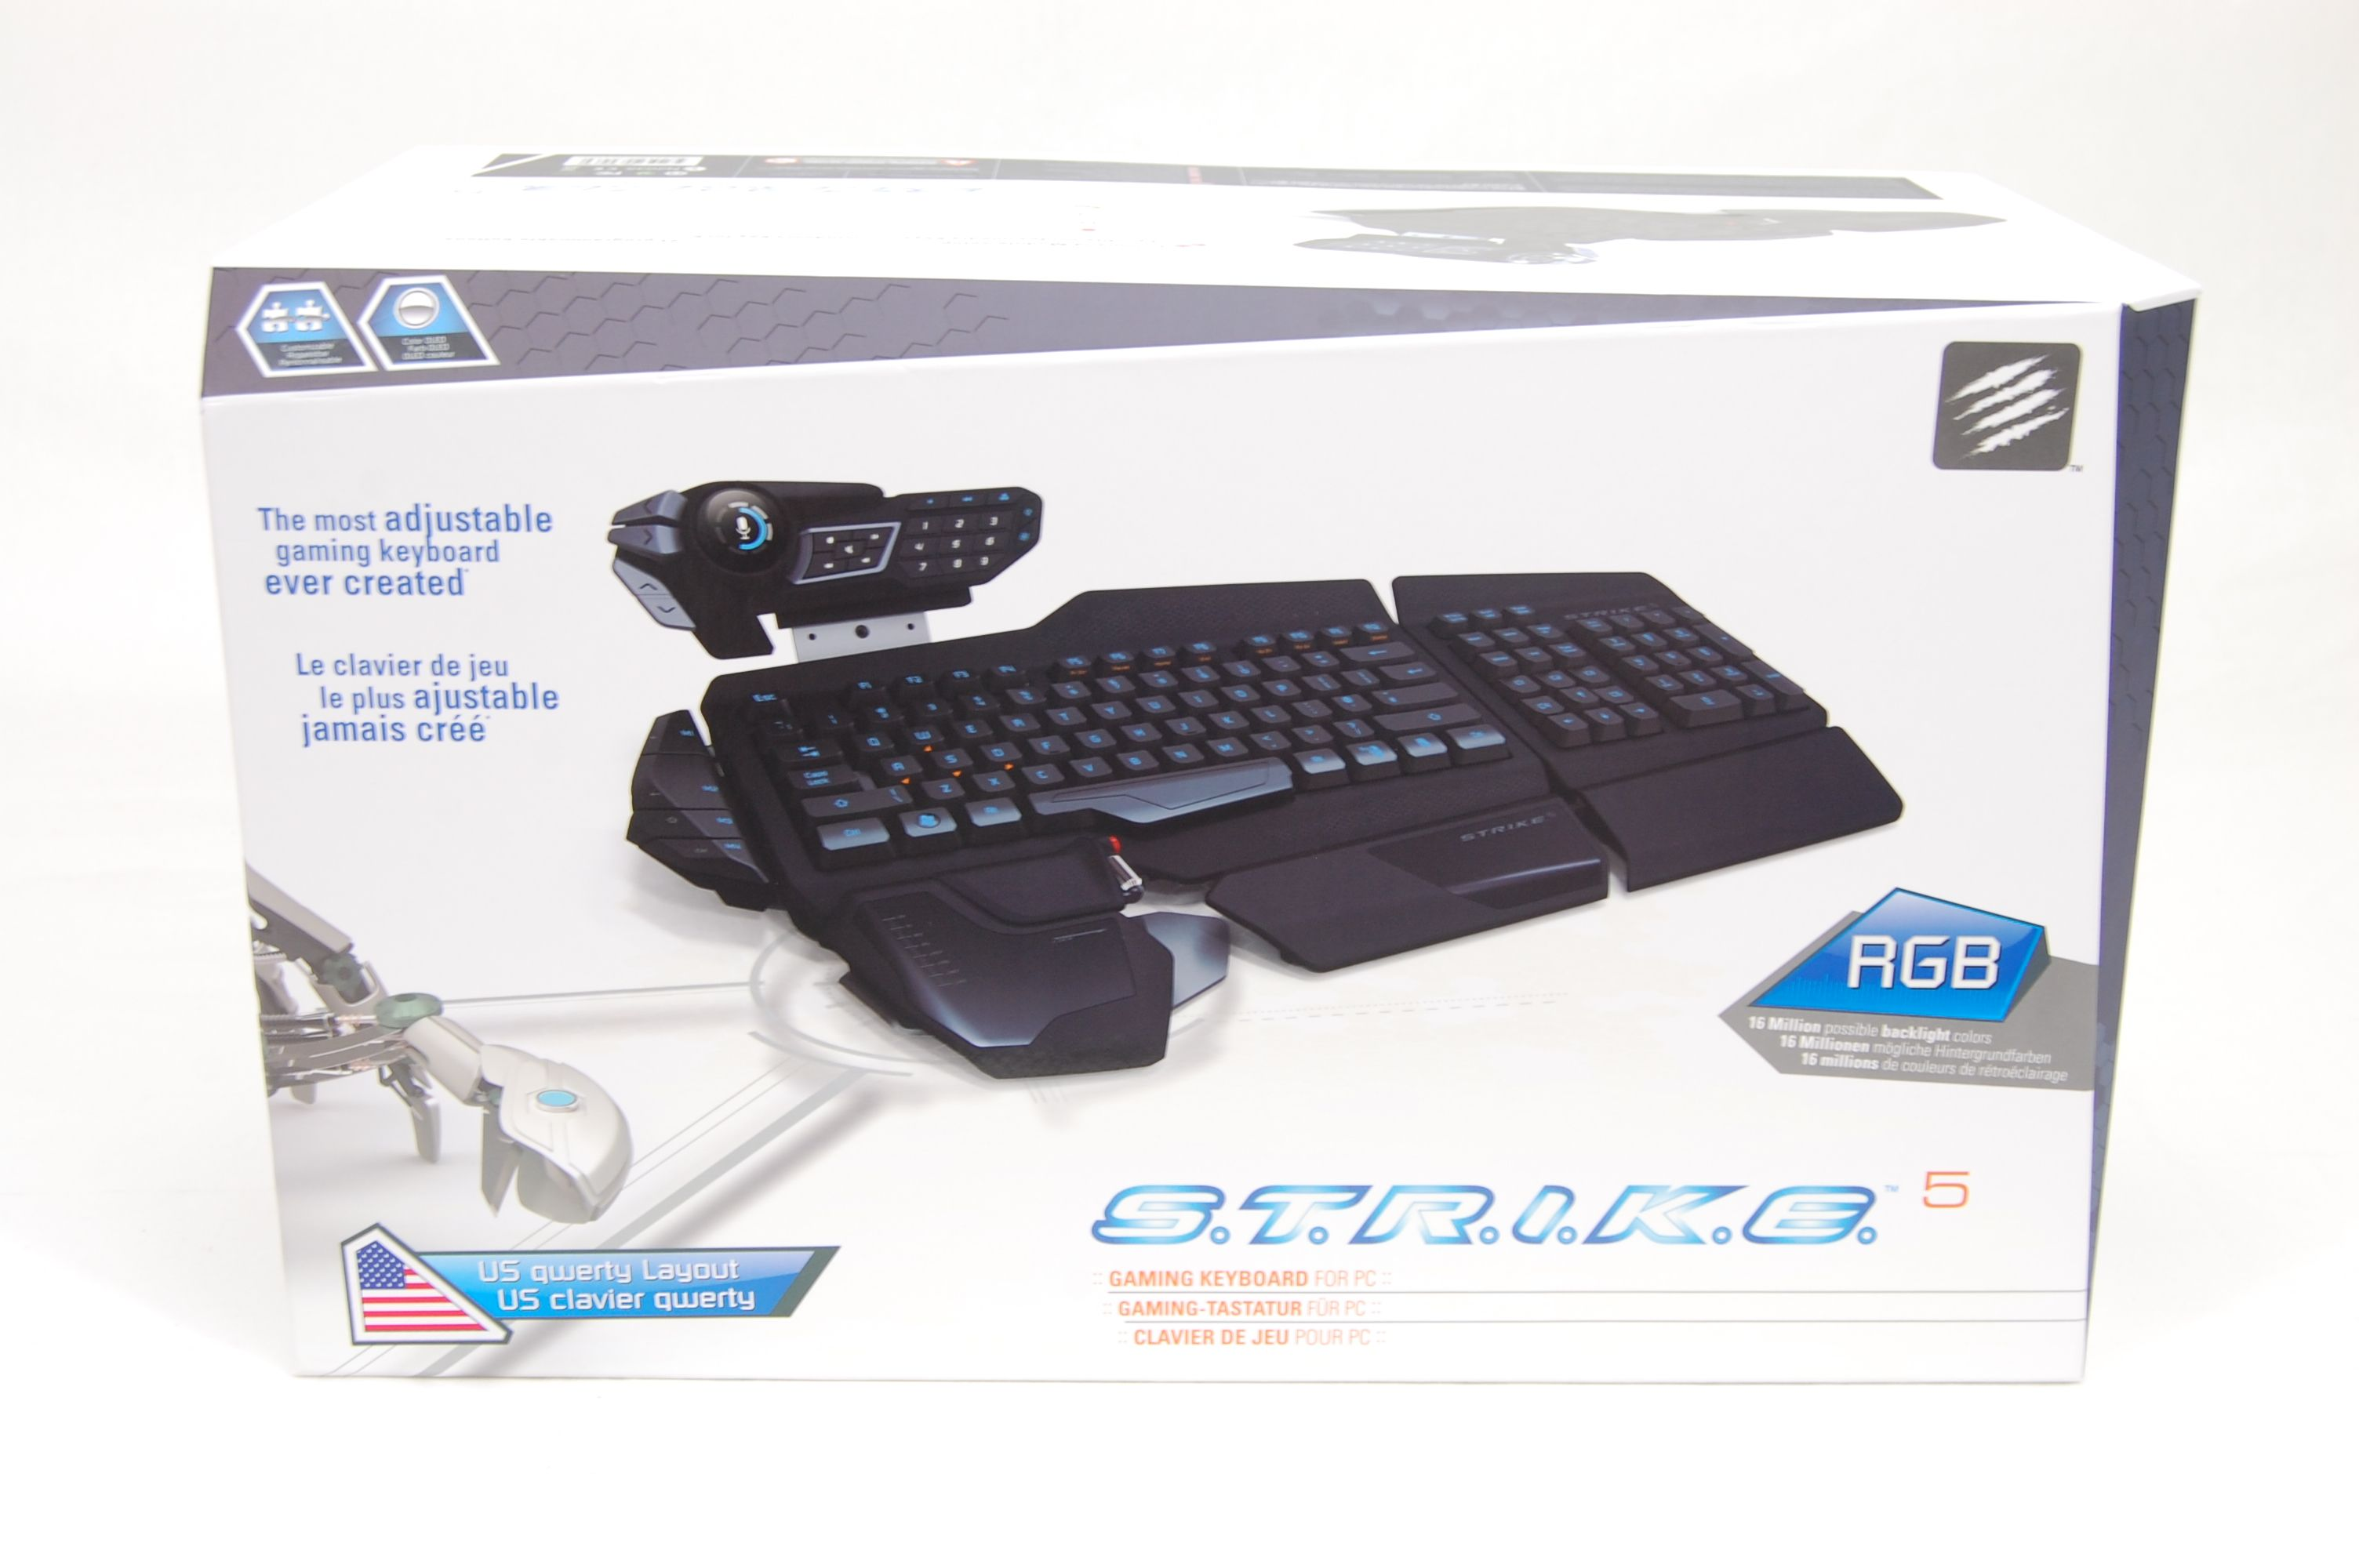 MadCatz-Strike5-Keyboard-Box